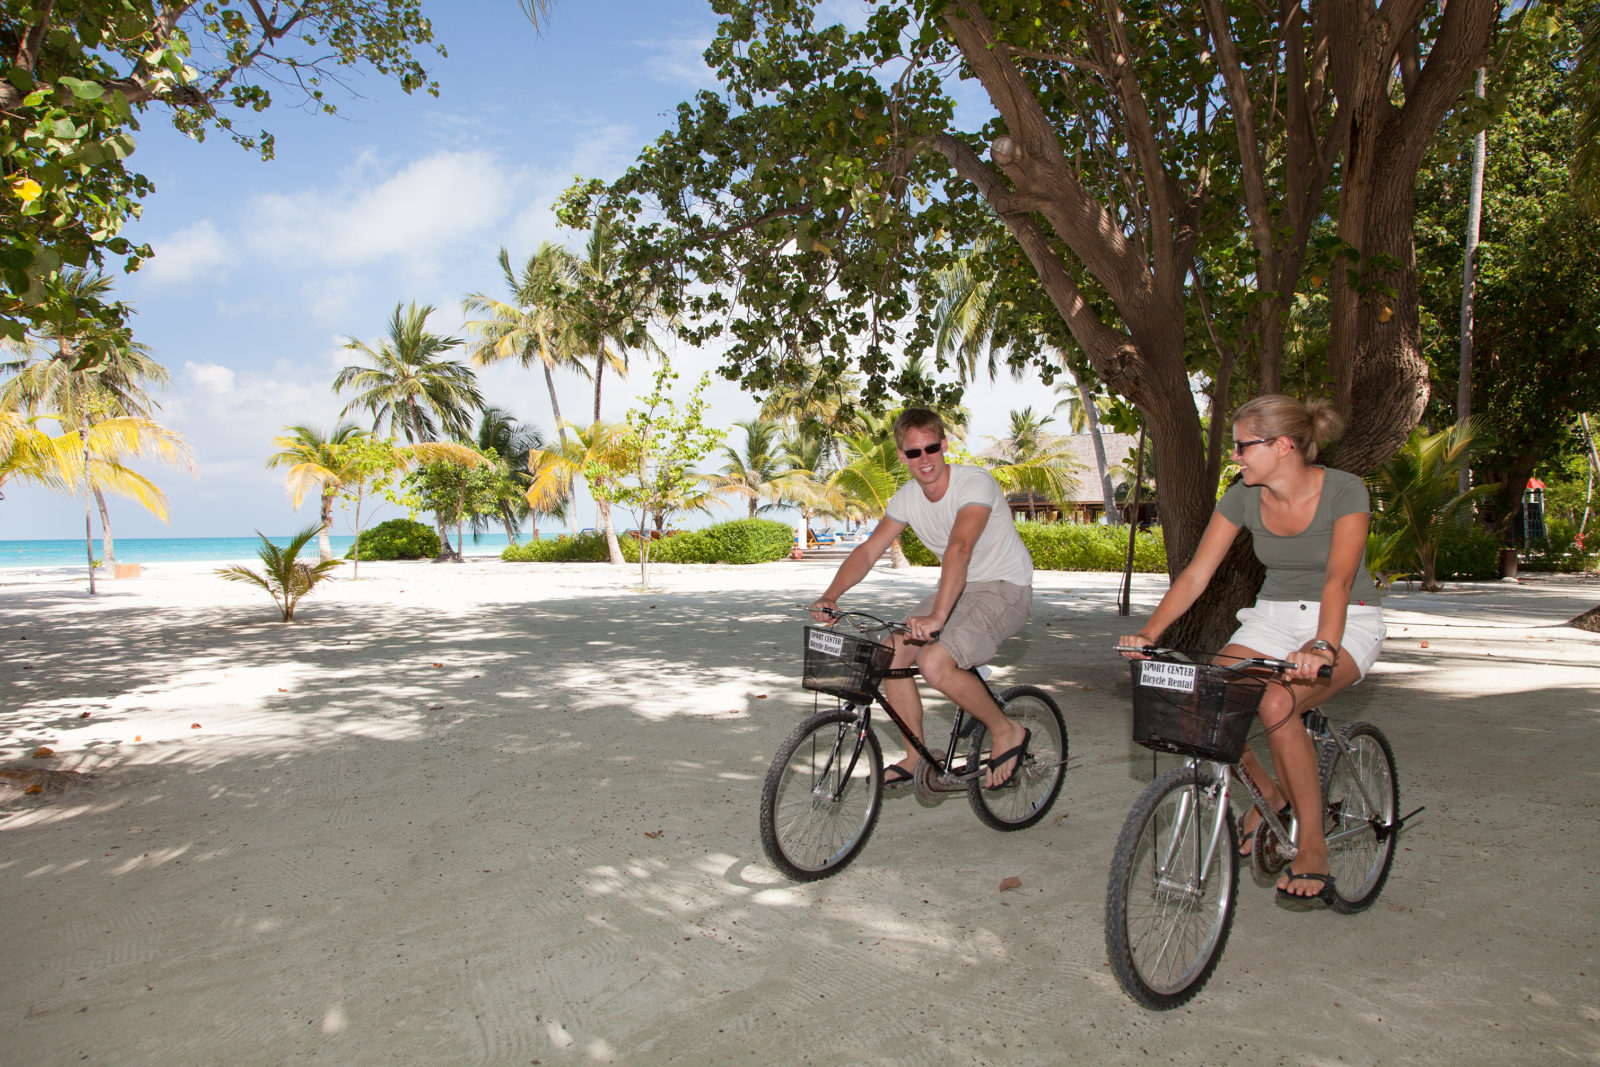 Bicycle rental in the Maldives